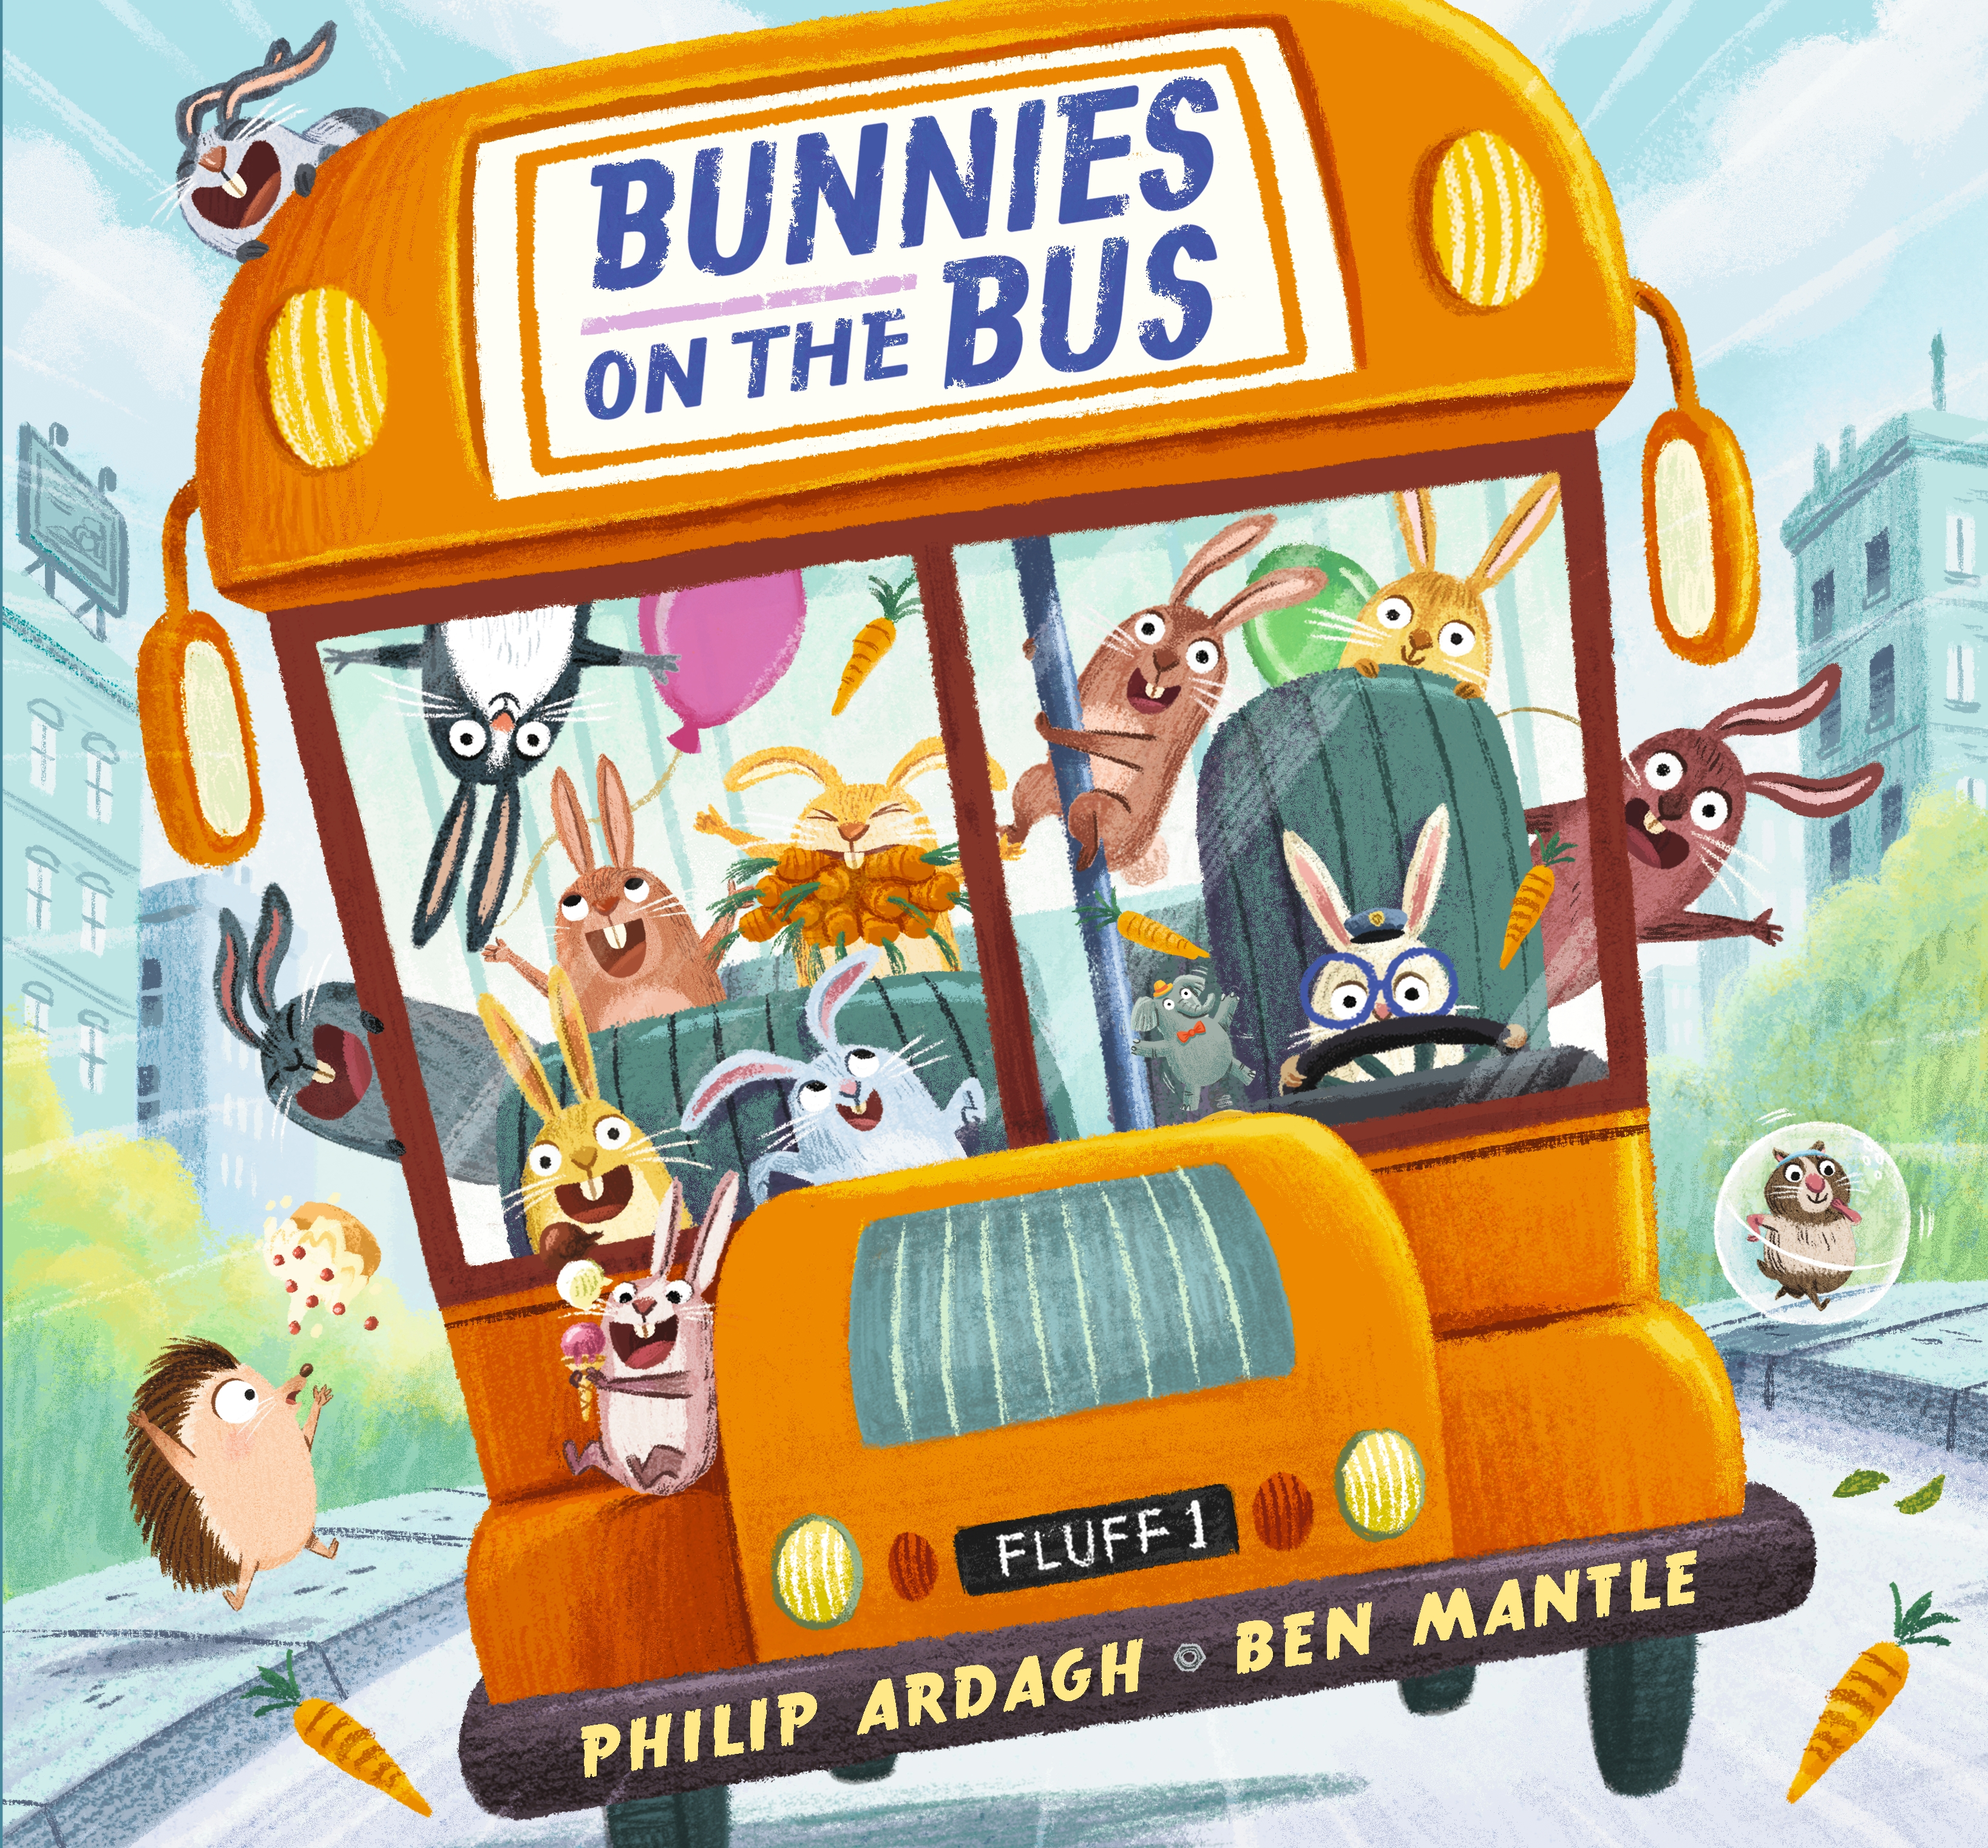 Image of front cover of Bunnies on the Bus